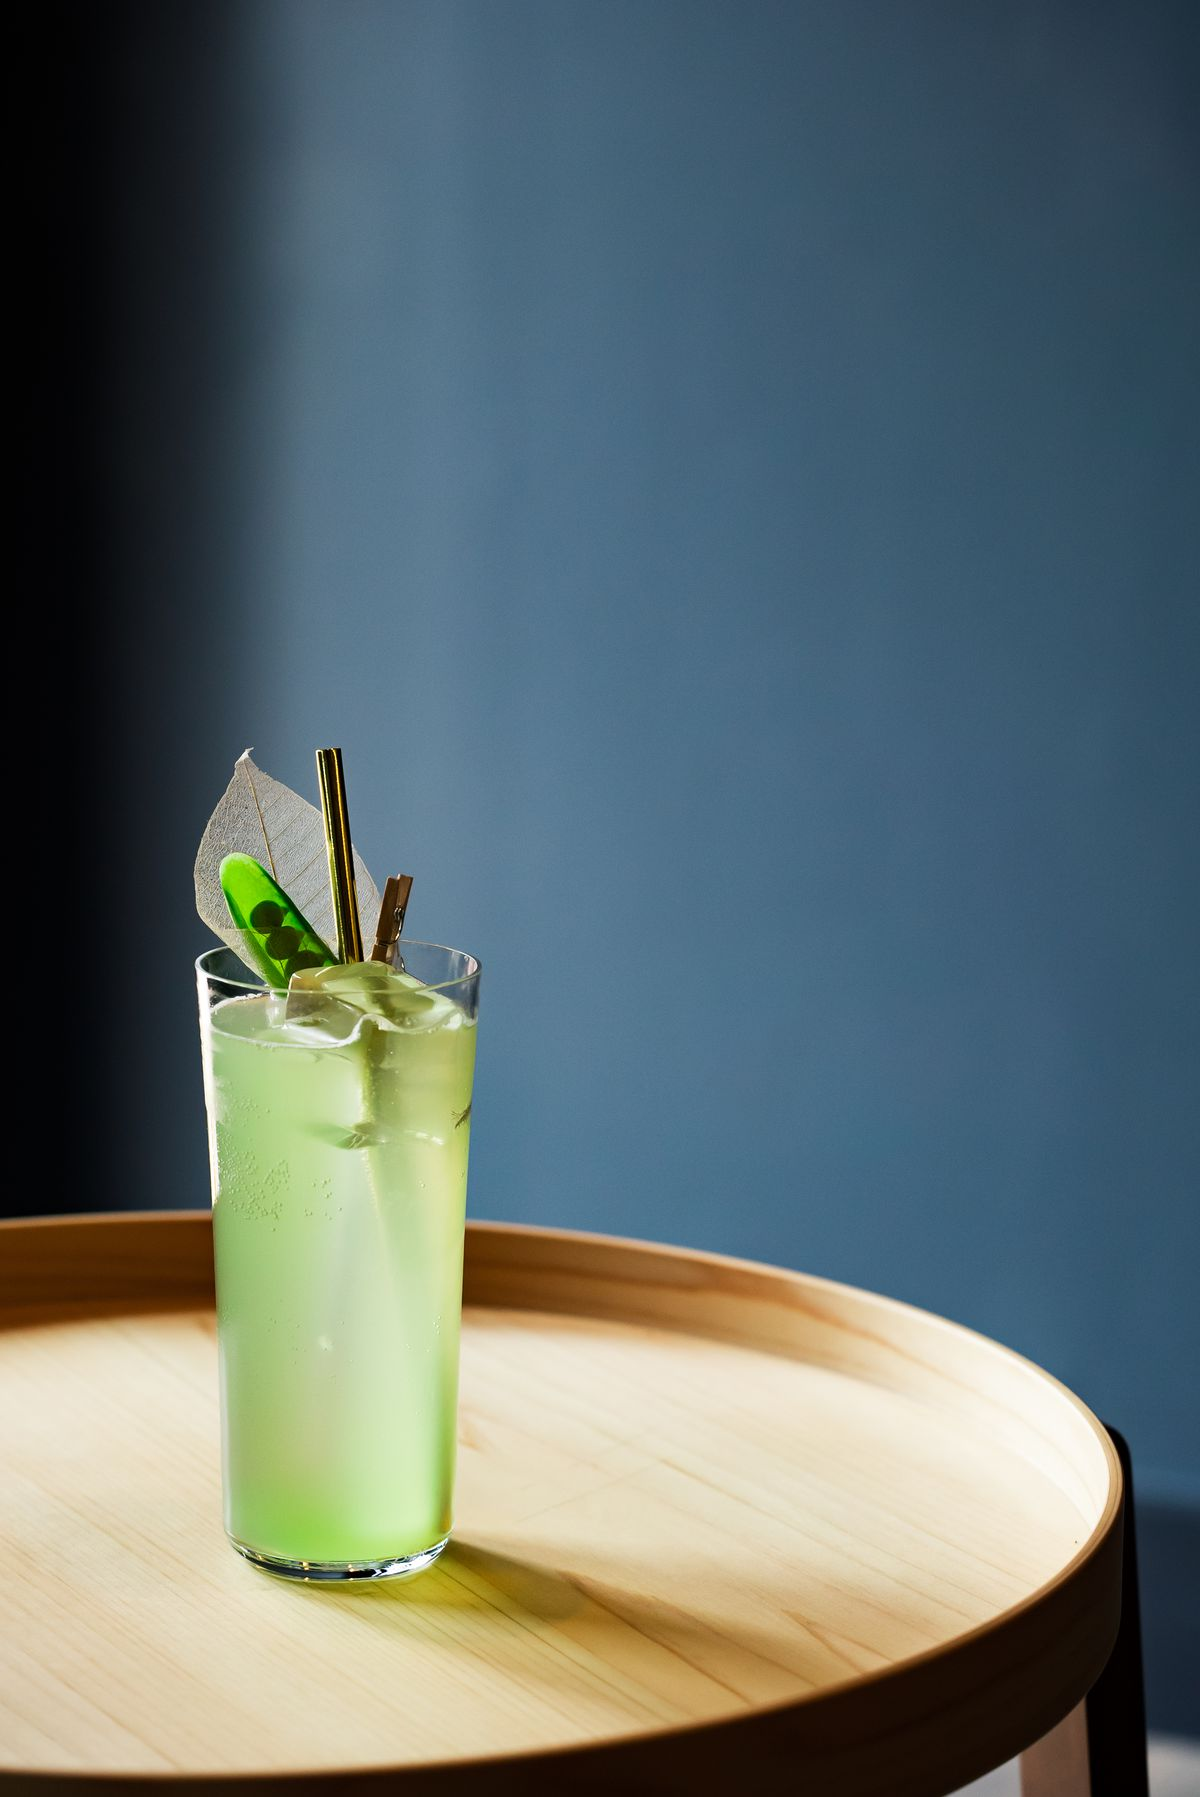 A pale green cocktail in a tall glass with a large leaf-shaped garnish and a metal straw.